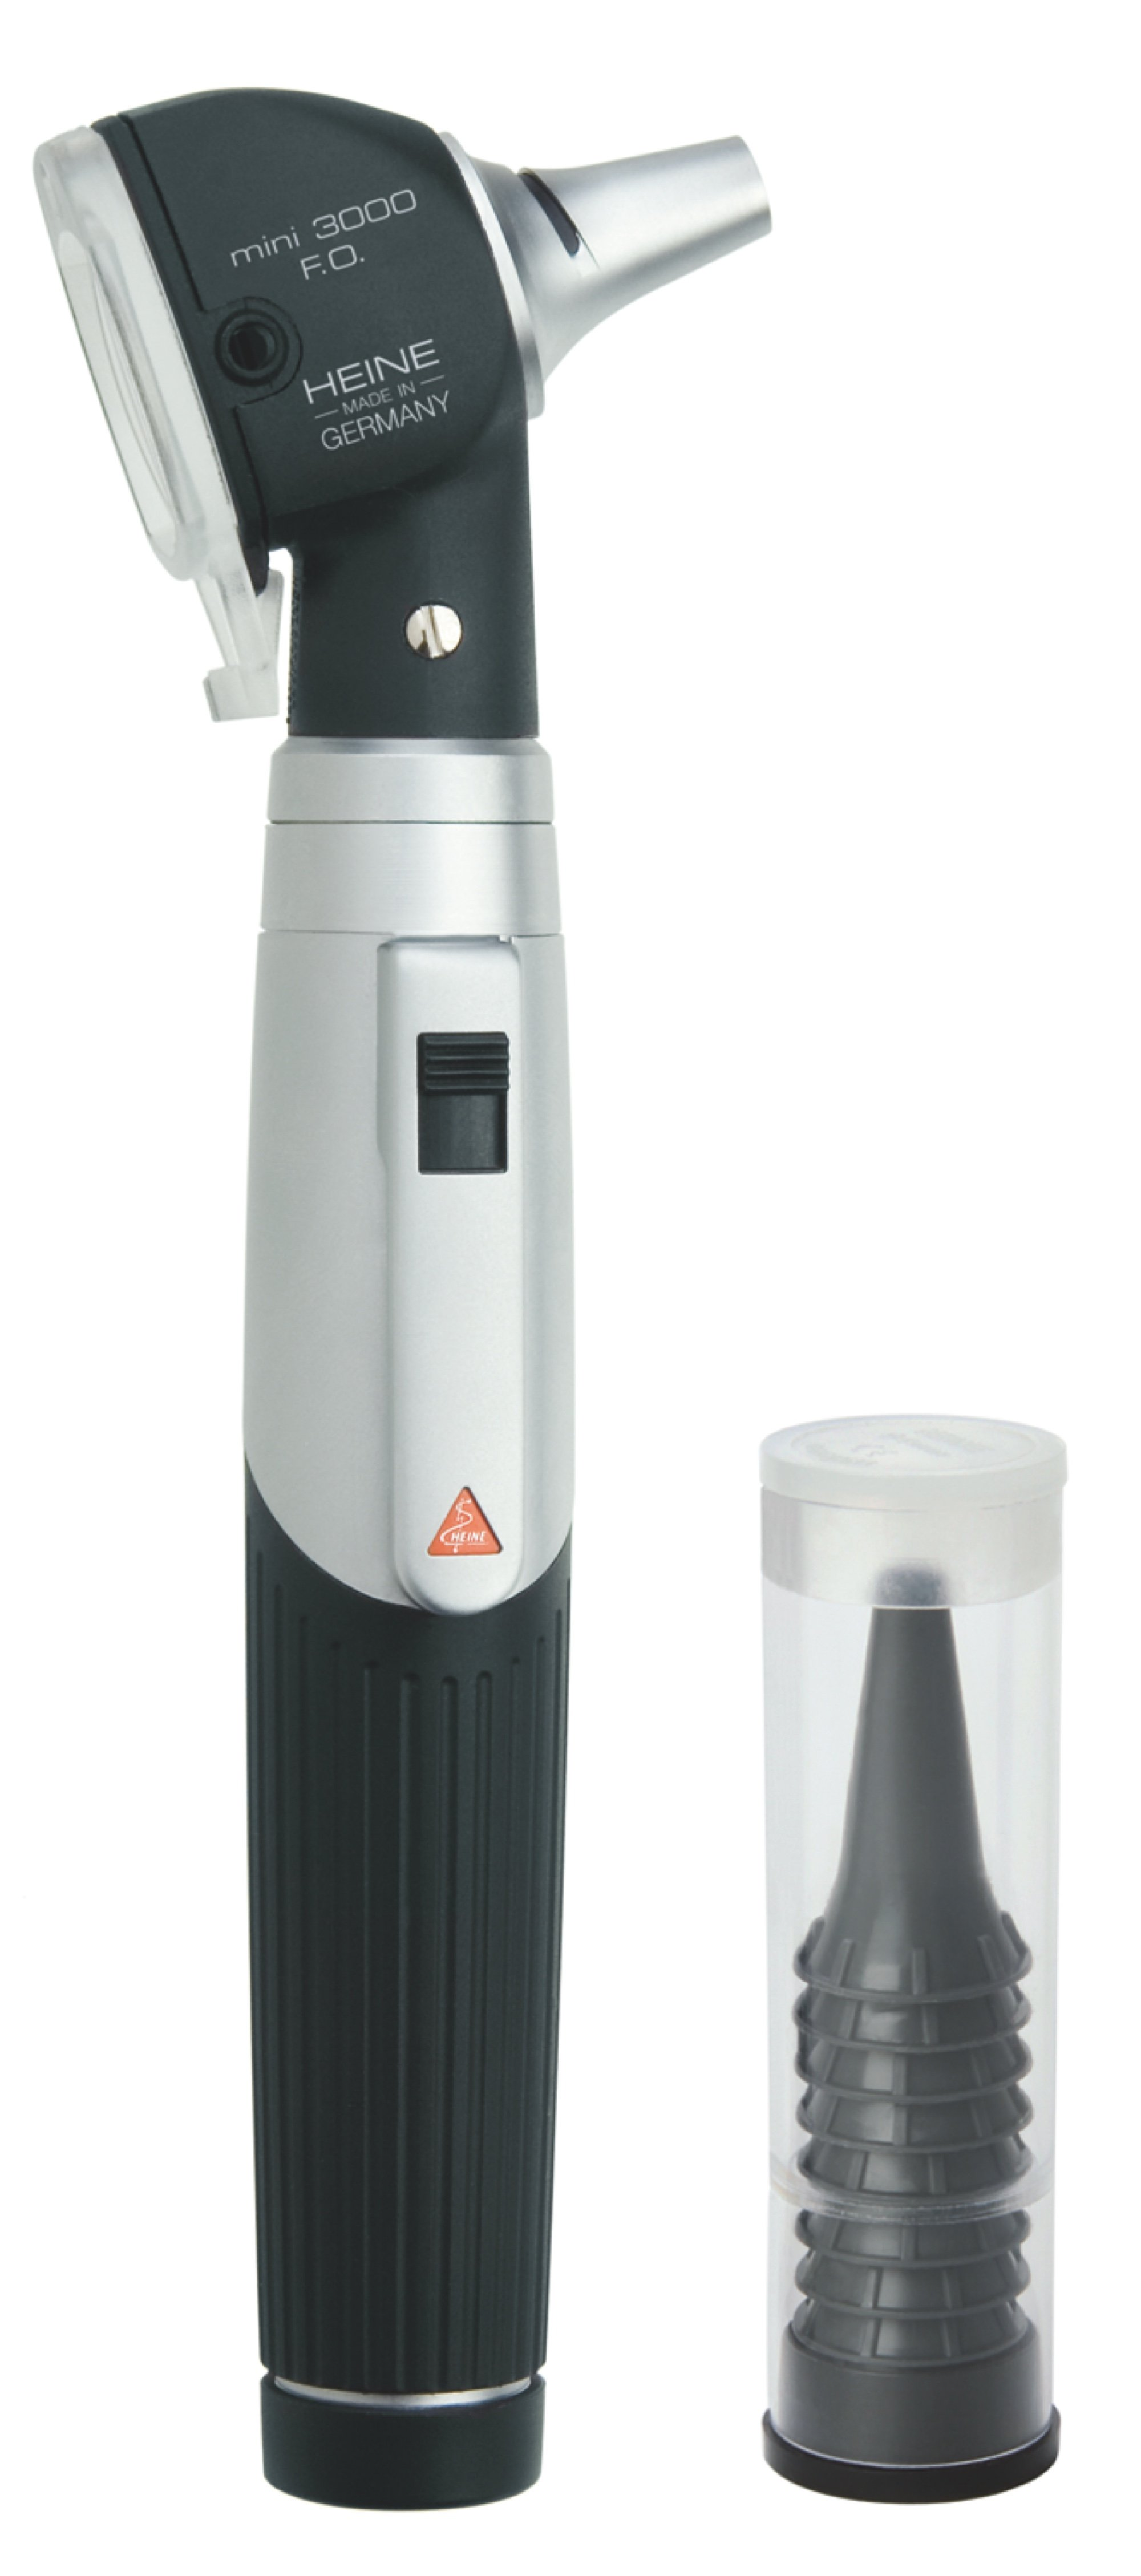 HEINE mini3000 F.O Otoscope Set with battery handle with Disposable tips